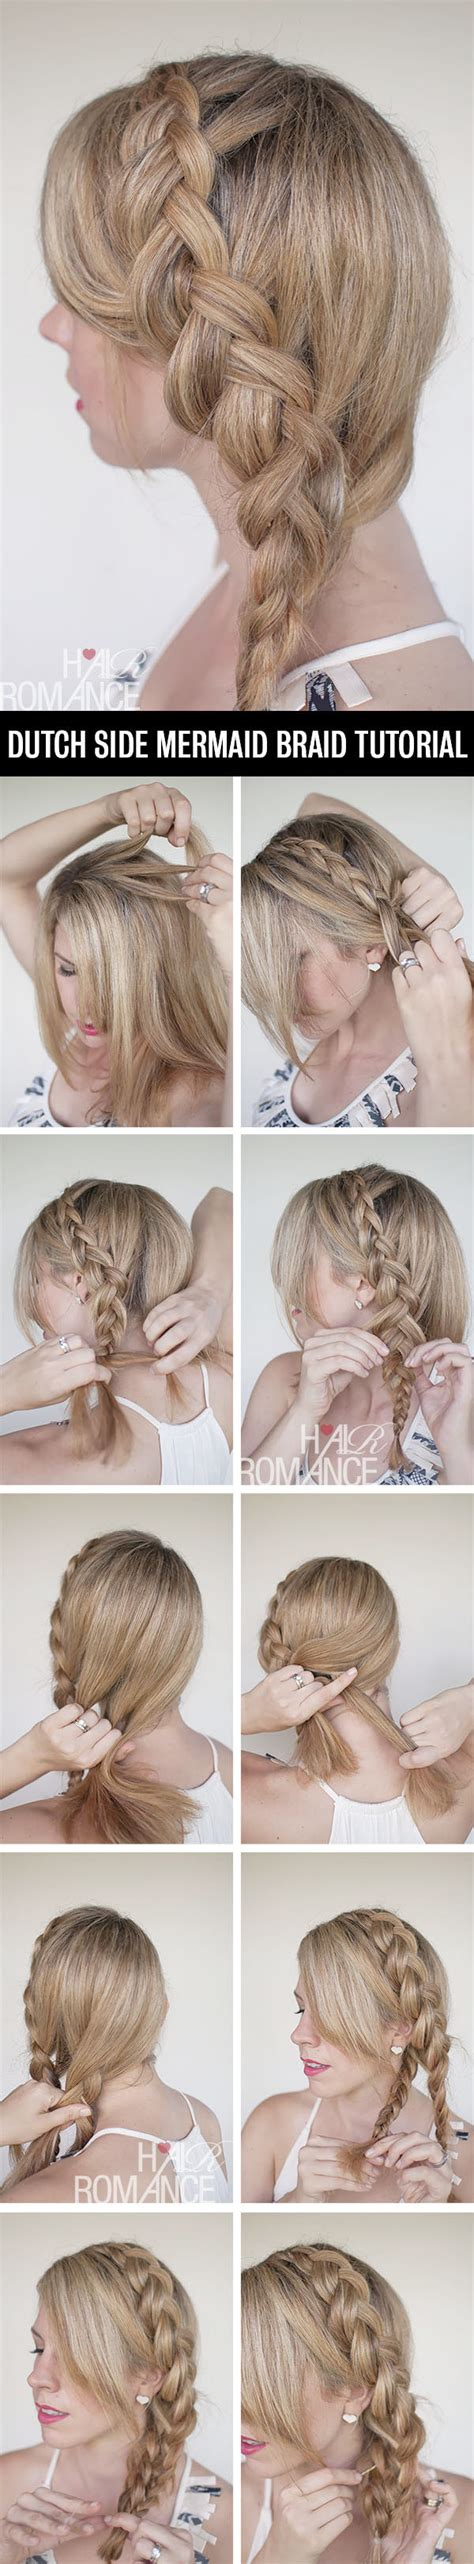 side braids step by step for kids diy side hairstyle step by step tutorials diy ideas tips